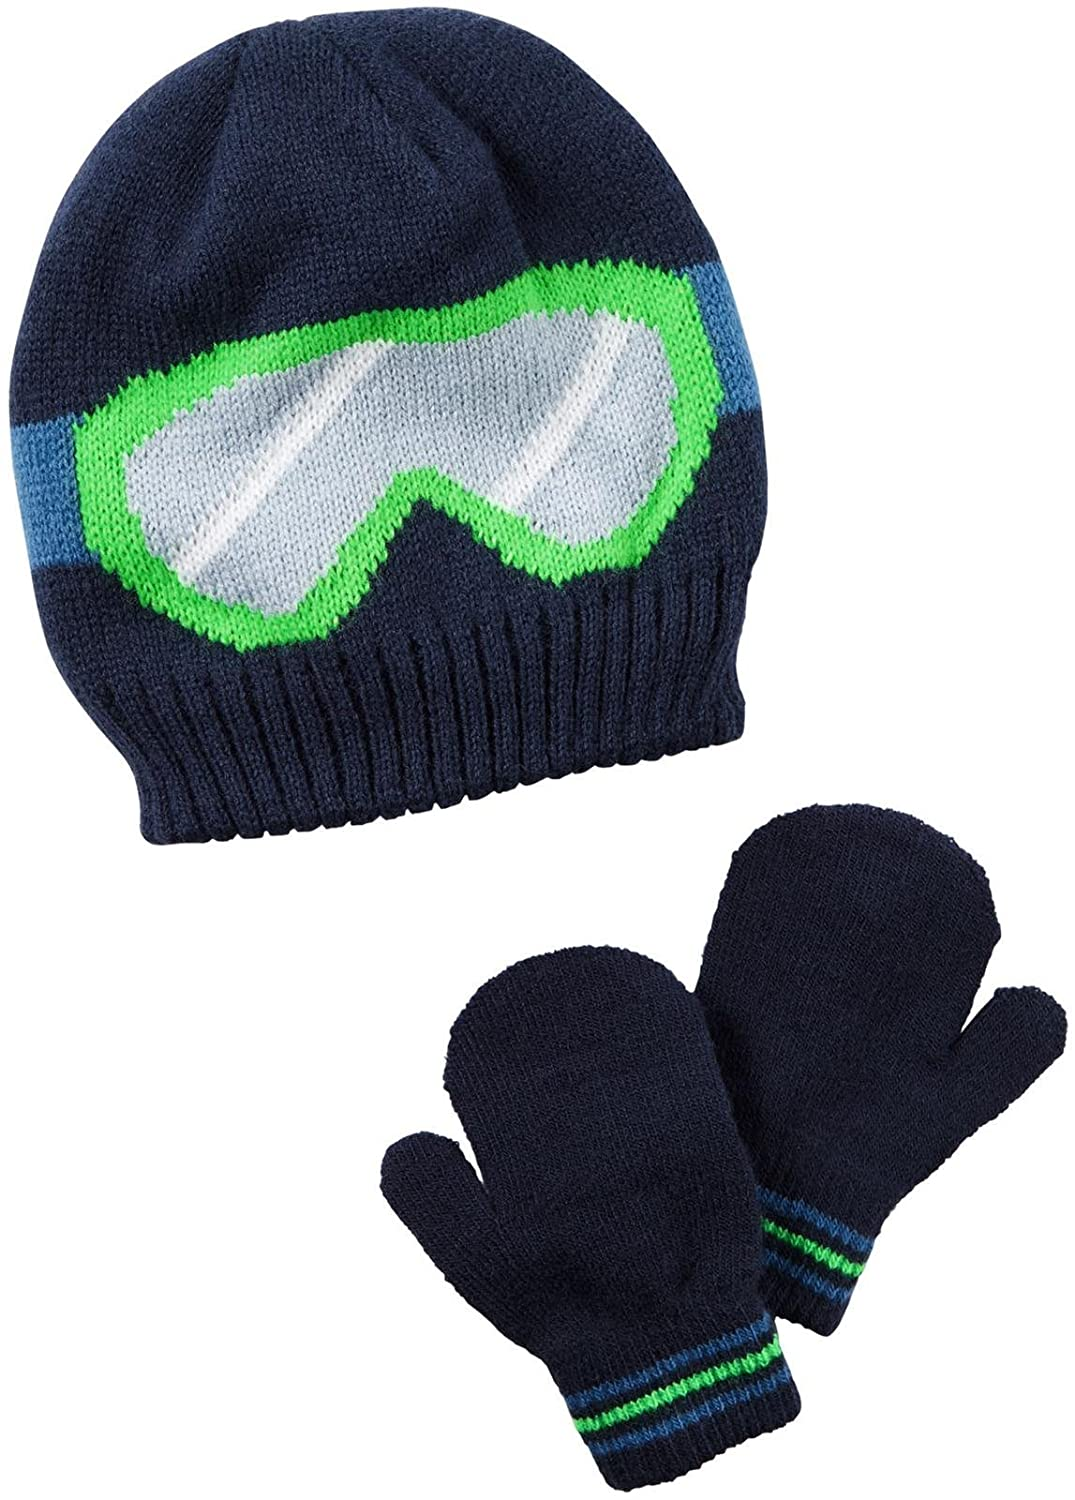 Carter's Baby Boys' Winter Hat-Glove Sets D08g033 Carters